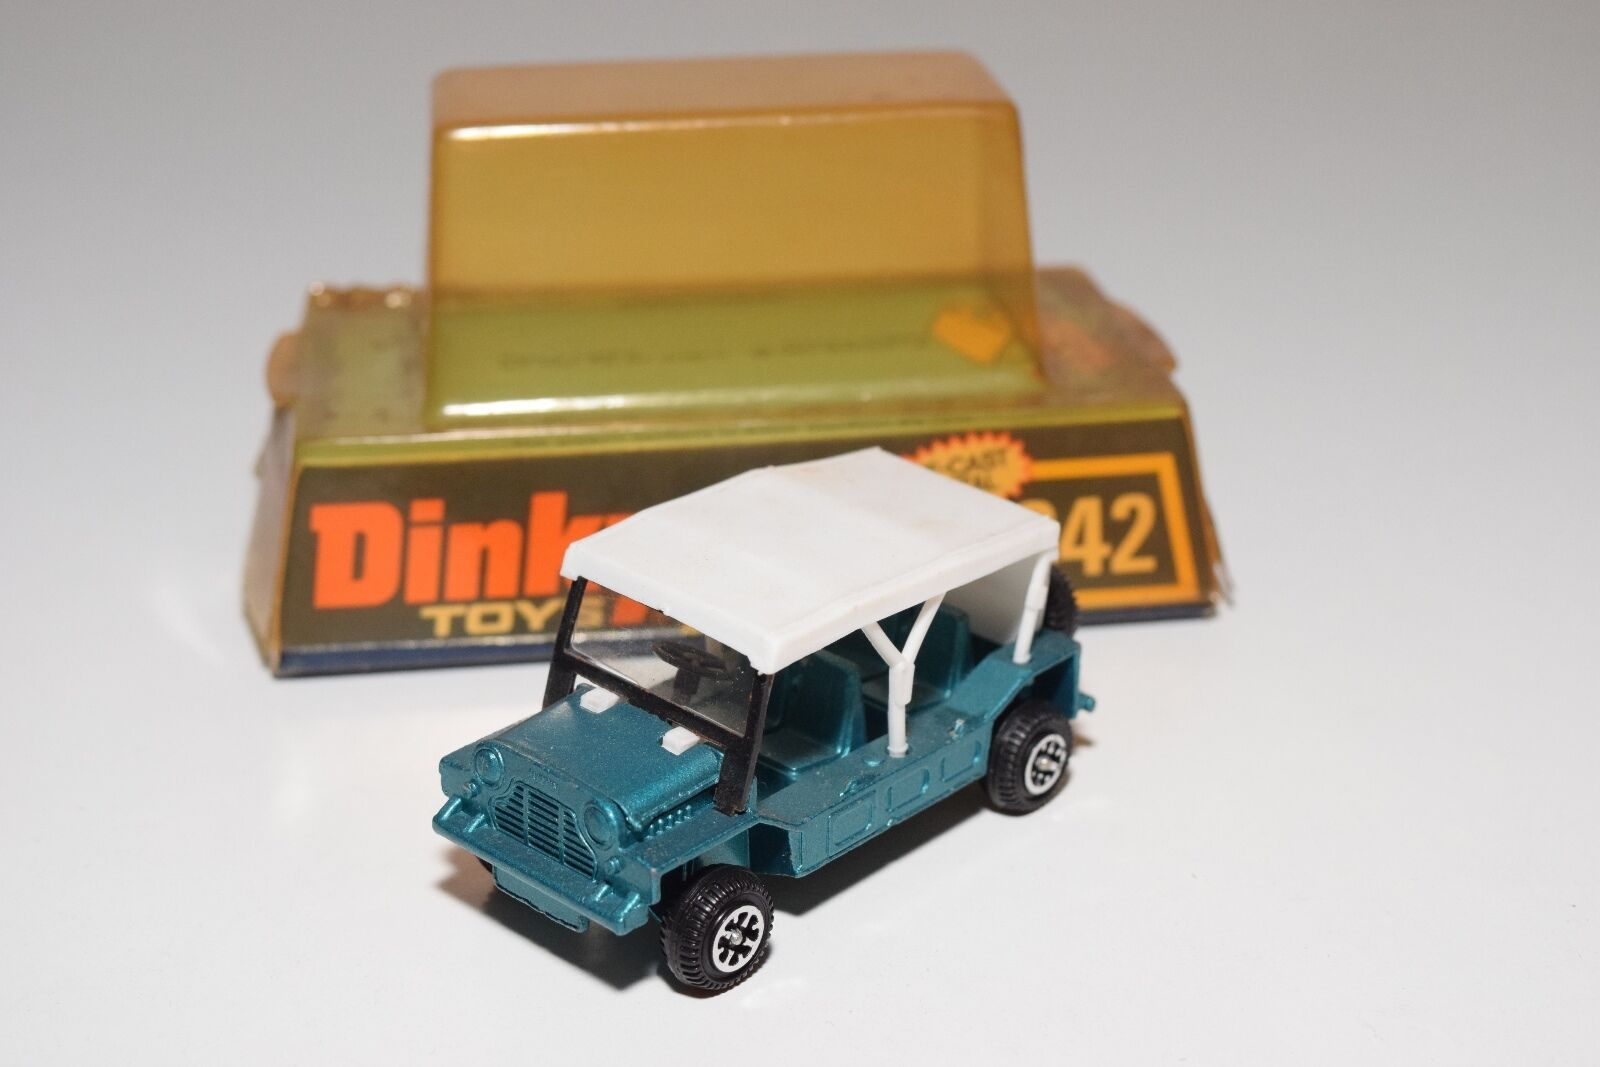 \\ DINKY TOYS 342 AUSTIN MINI MOKE METALLIC verde VERY NEAR MINT BOXED